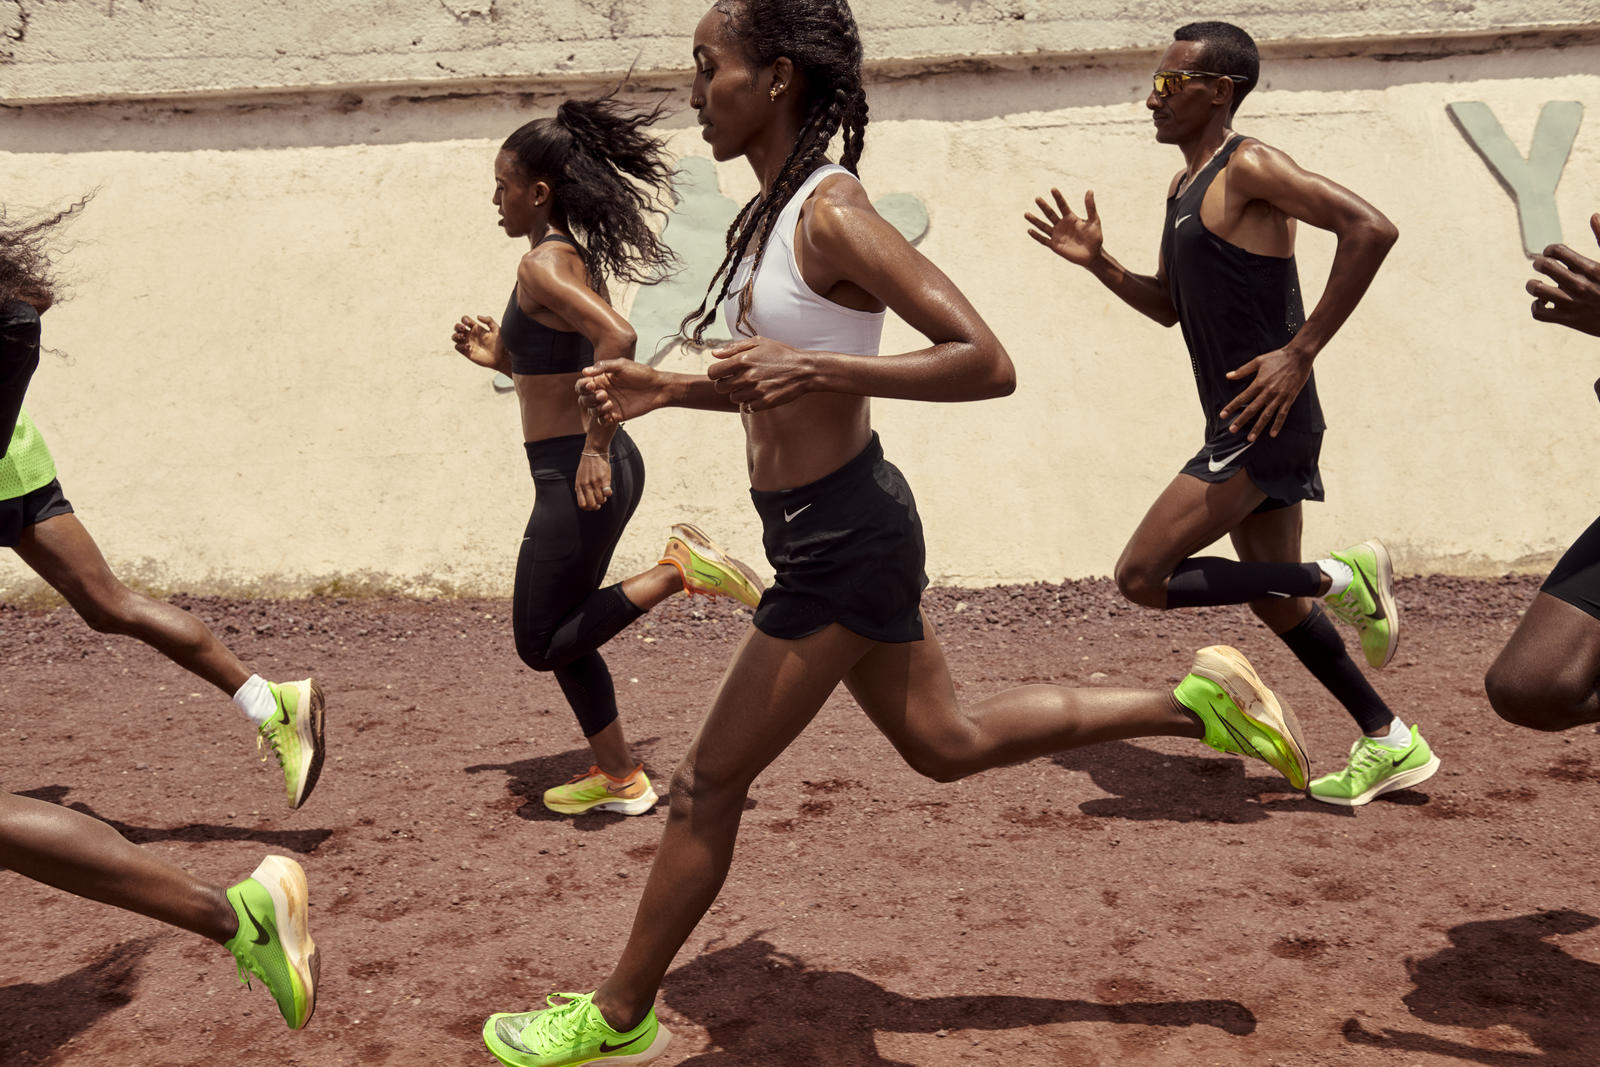 Nike Zoom Pegasus Turbo 2: Your everyday training shoe